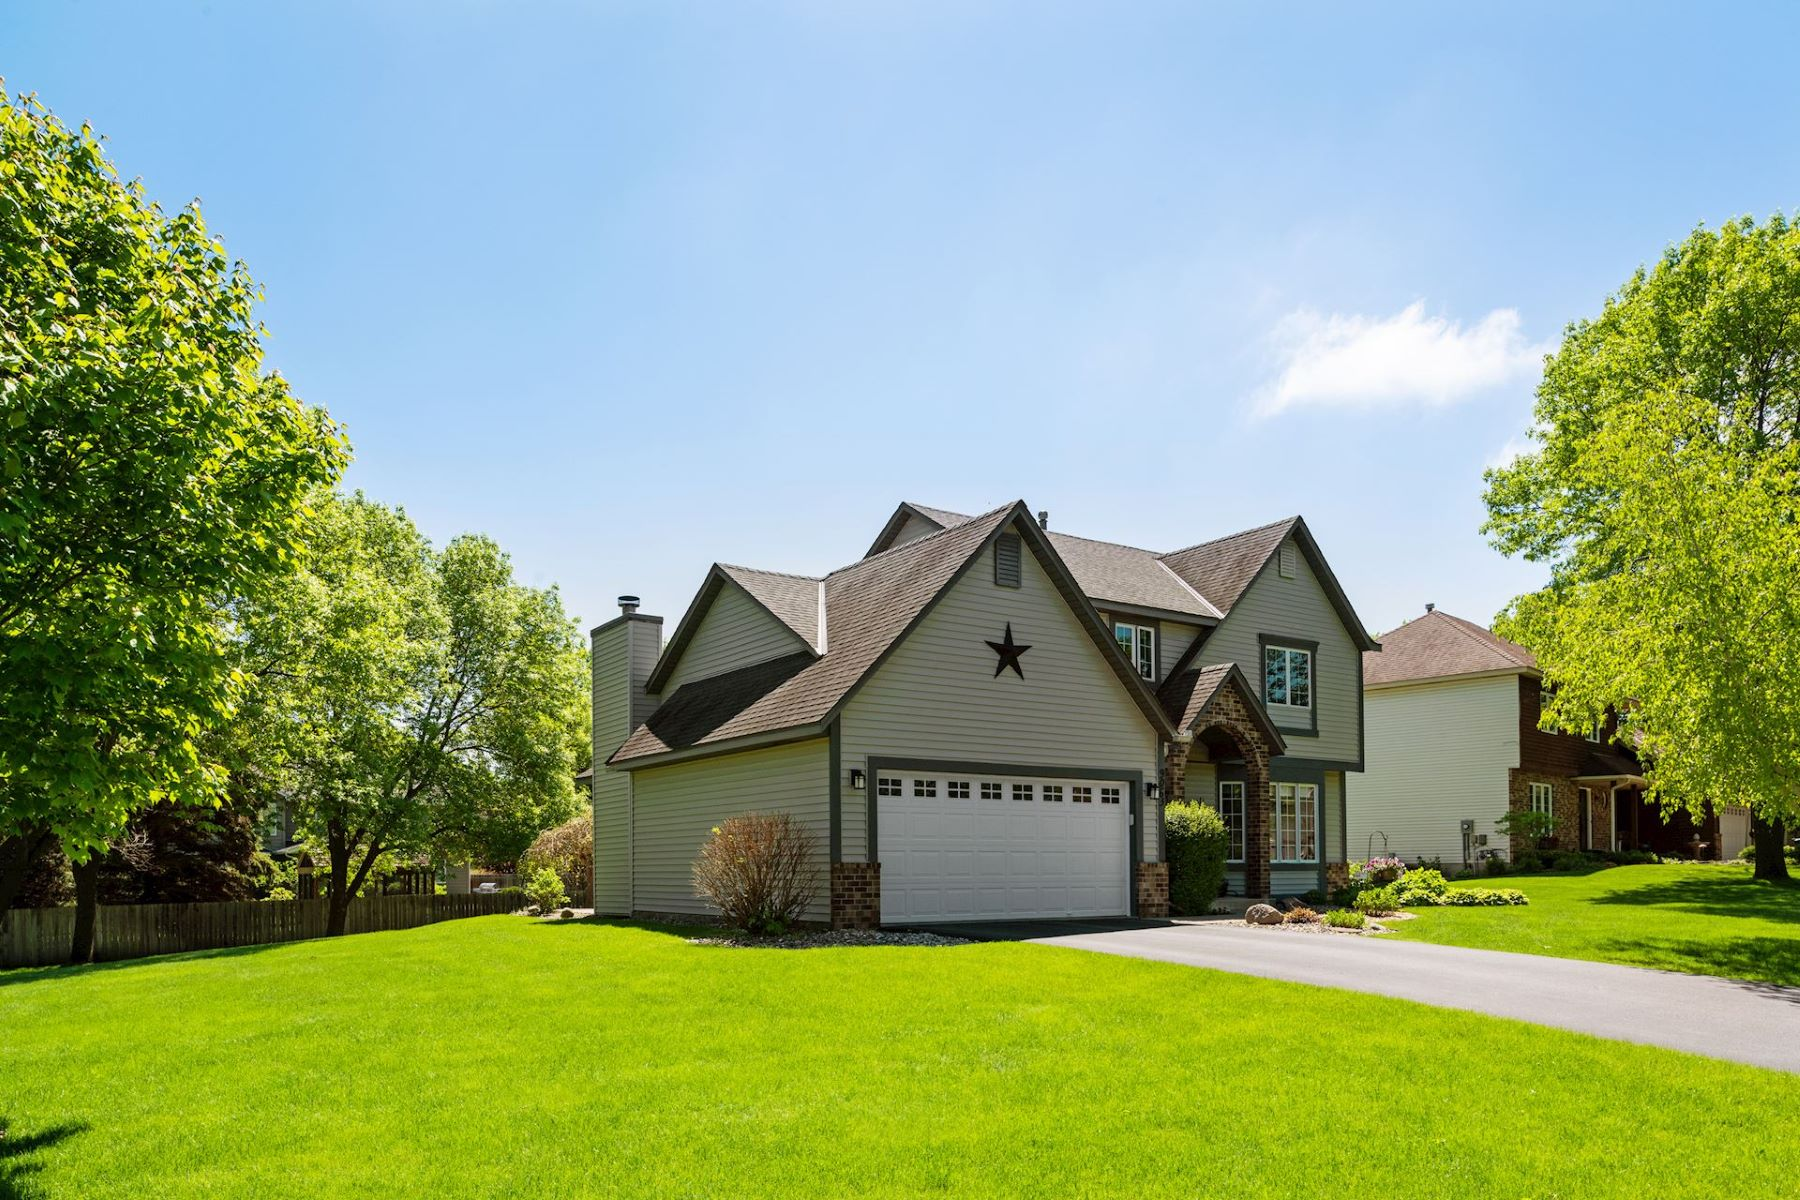 Single Family Homes for Sale at Pride of ownership! Beautifully maintained home in Cedar Ridge Elementary 9063 Dressen Circle Eden Prairie, Minnesota 55347 United States